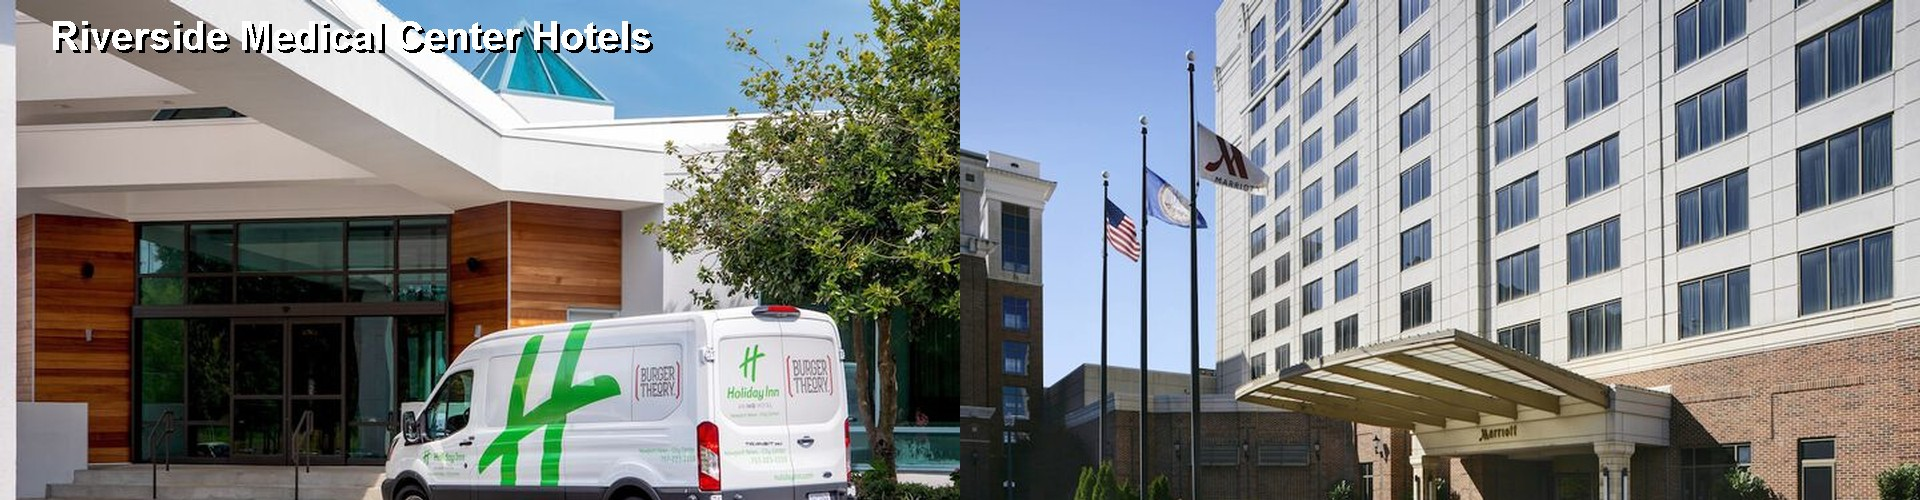 $40+ Hotels Near Riverside Medical Center in Newport News VA